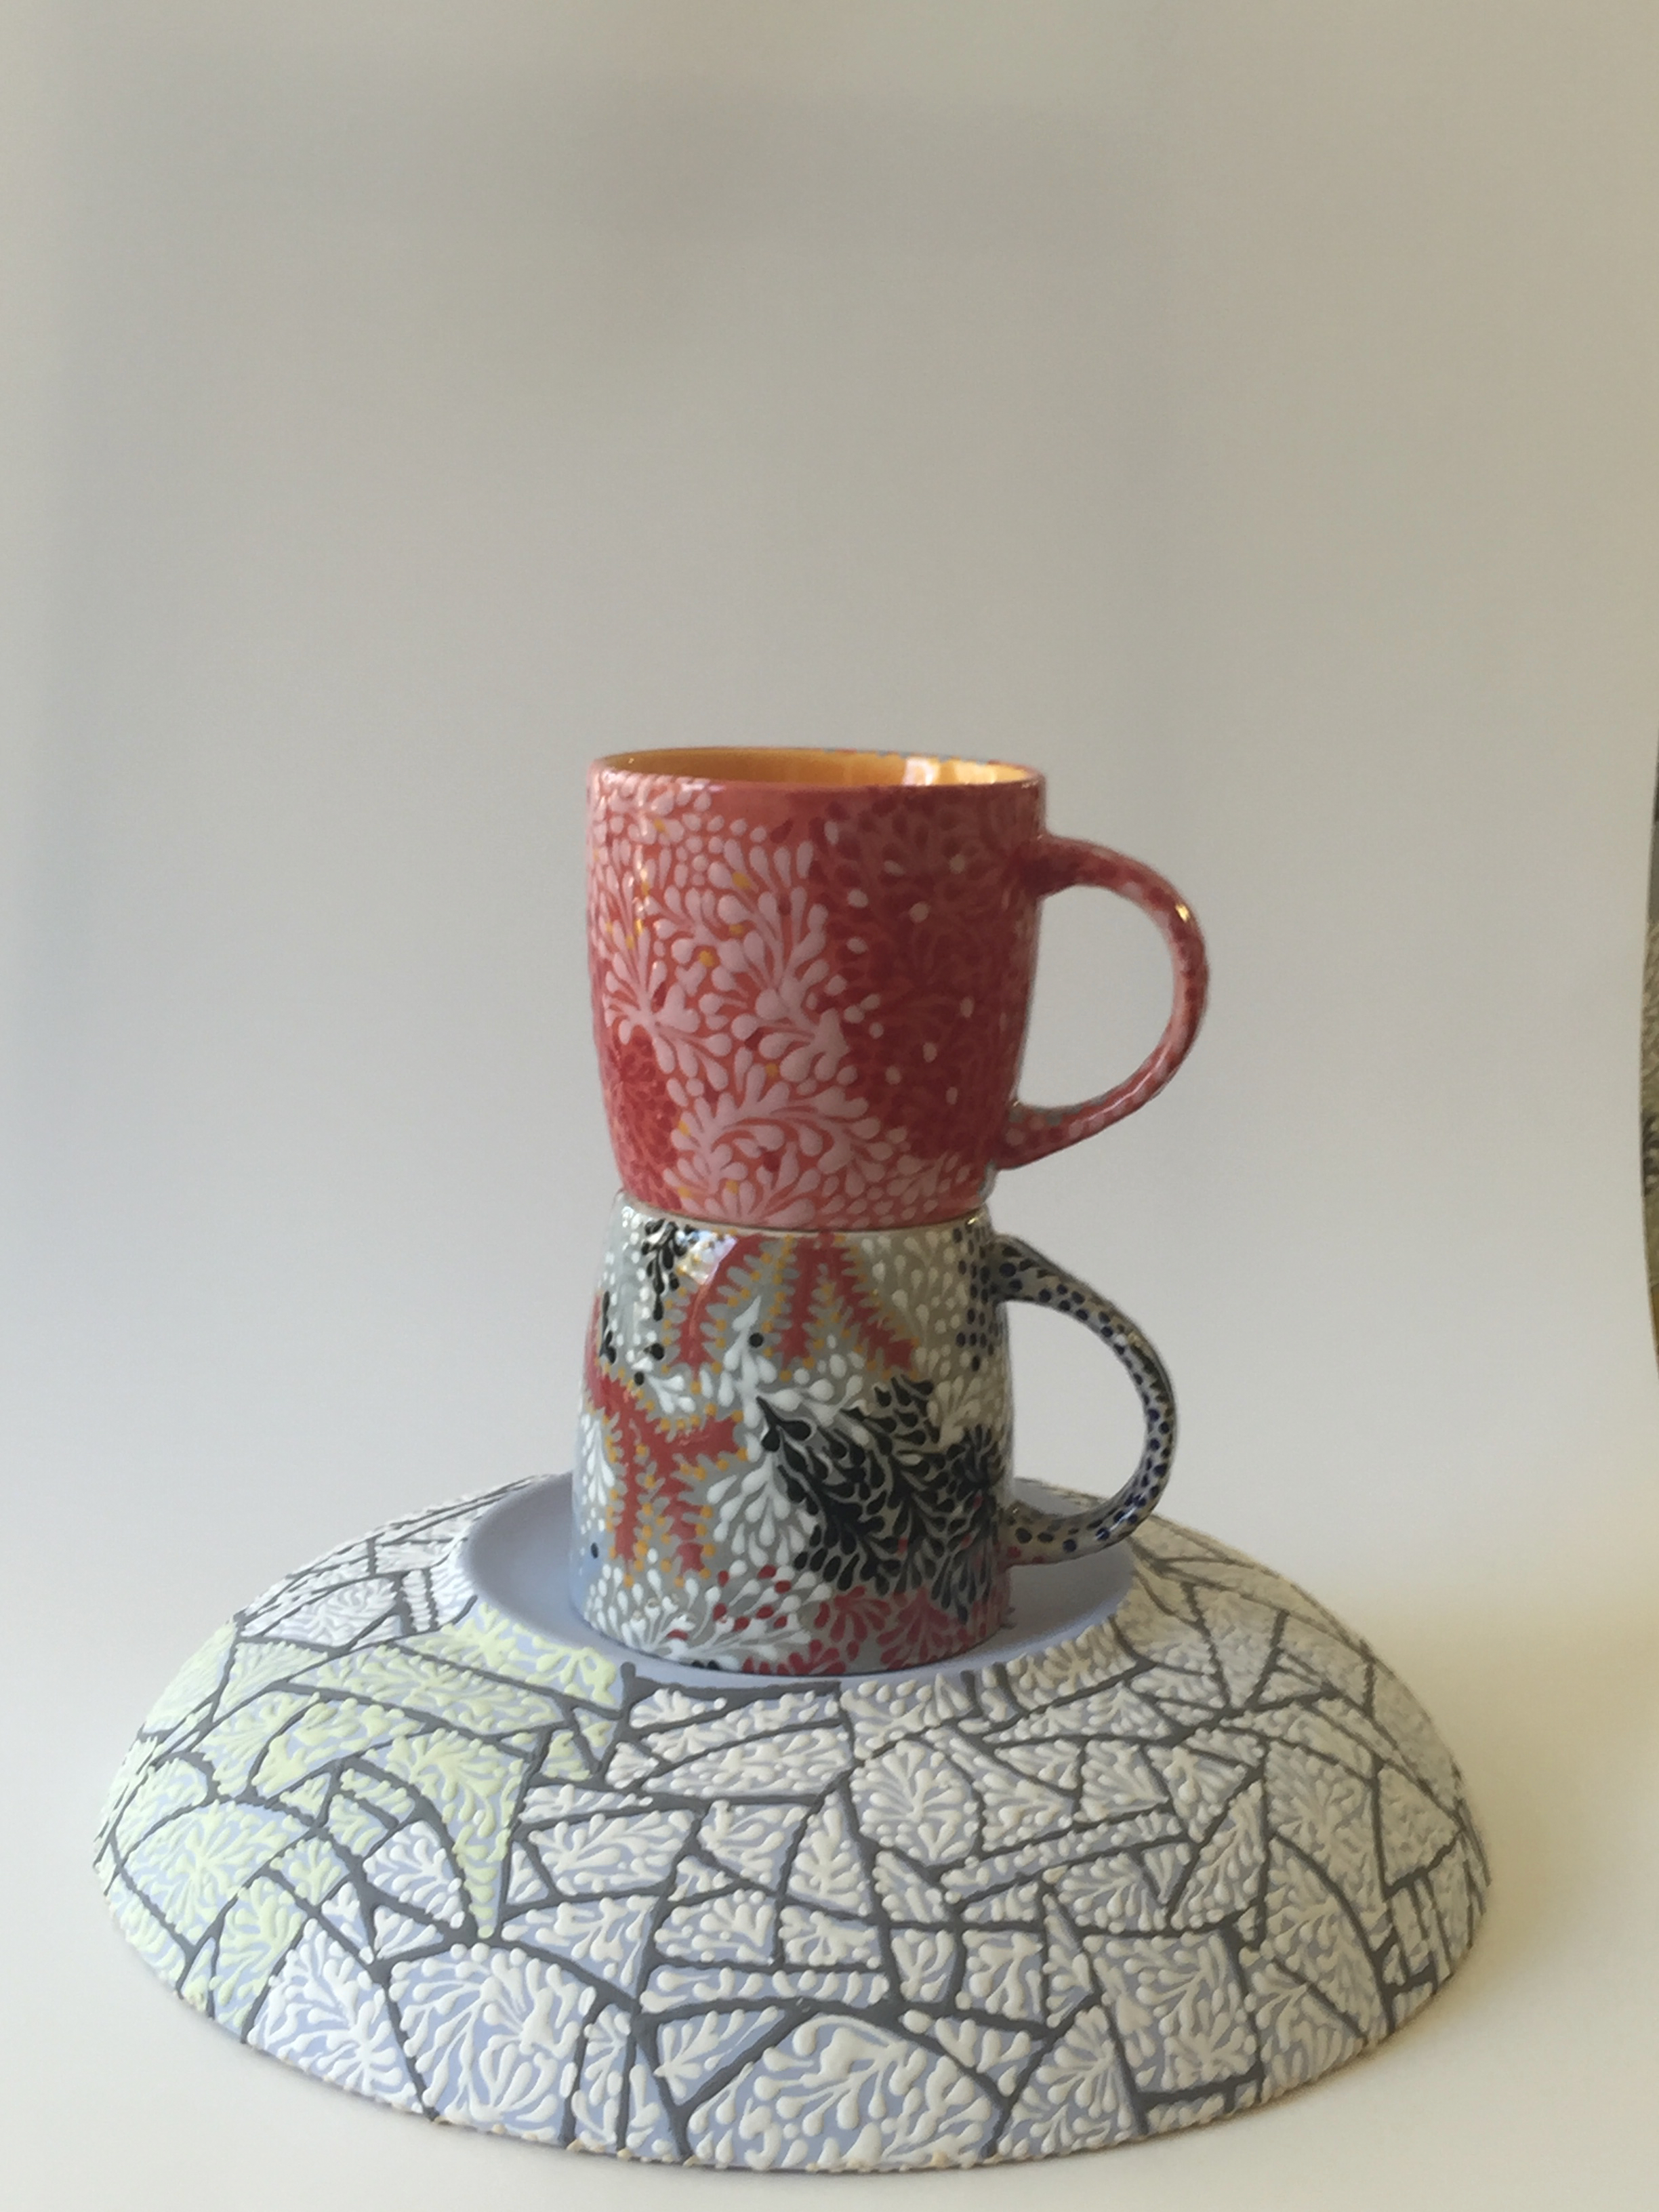 CRACKED ICE WITH SPRIGS PLATE AND TWIGGY SPRIG MUGS